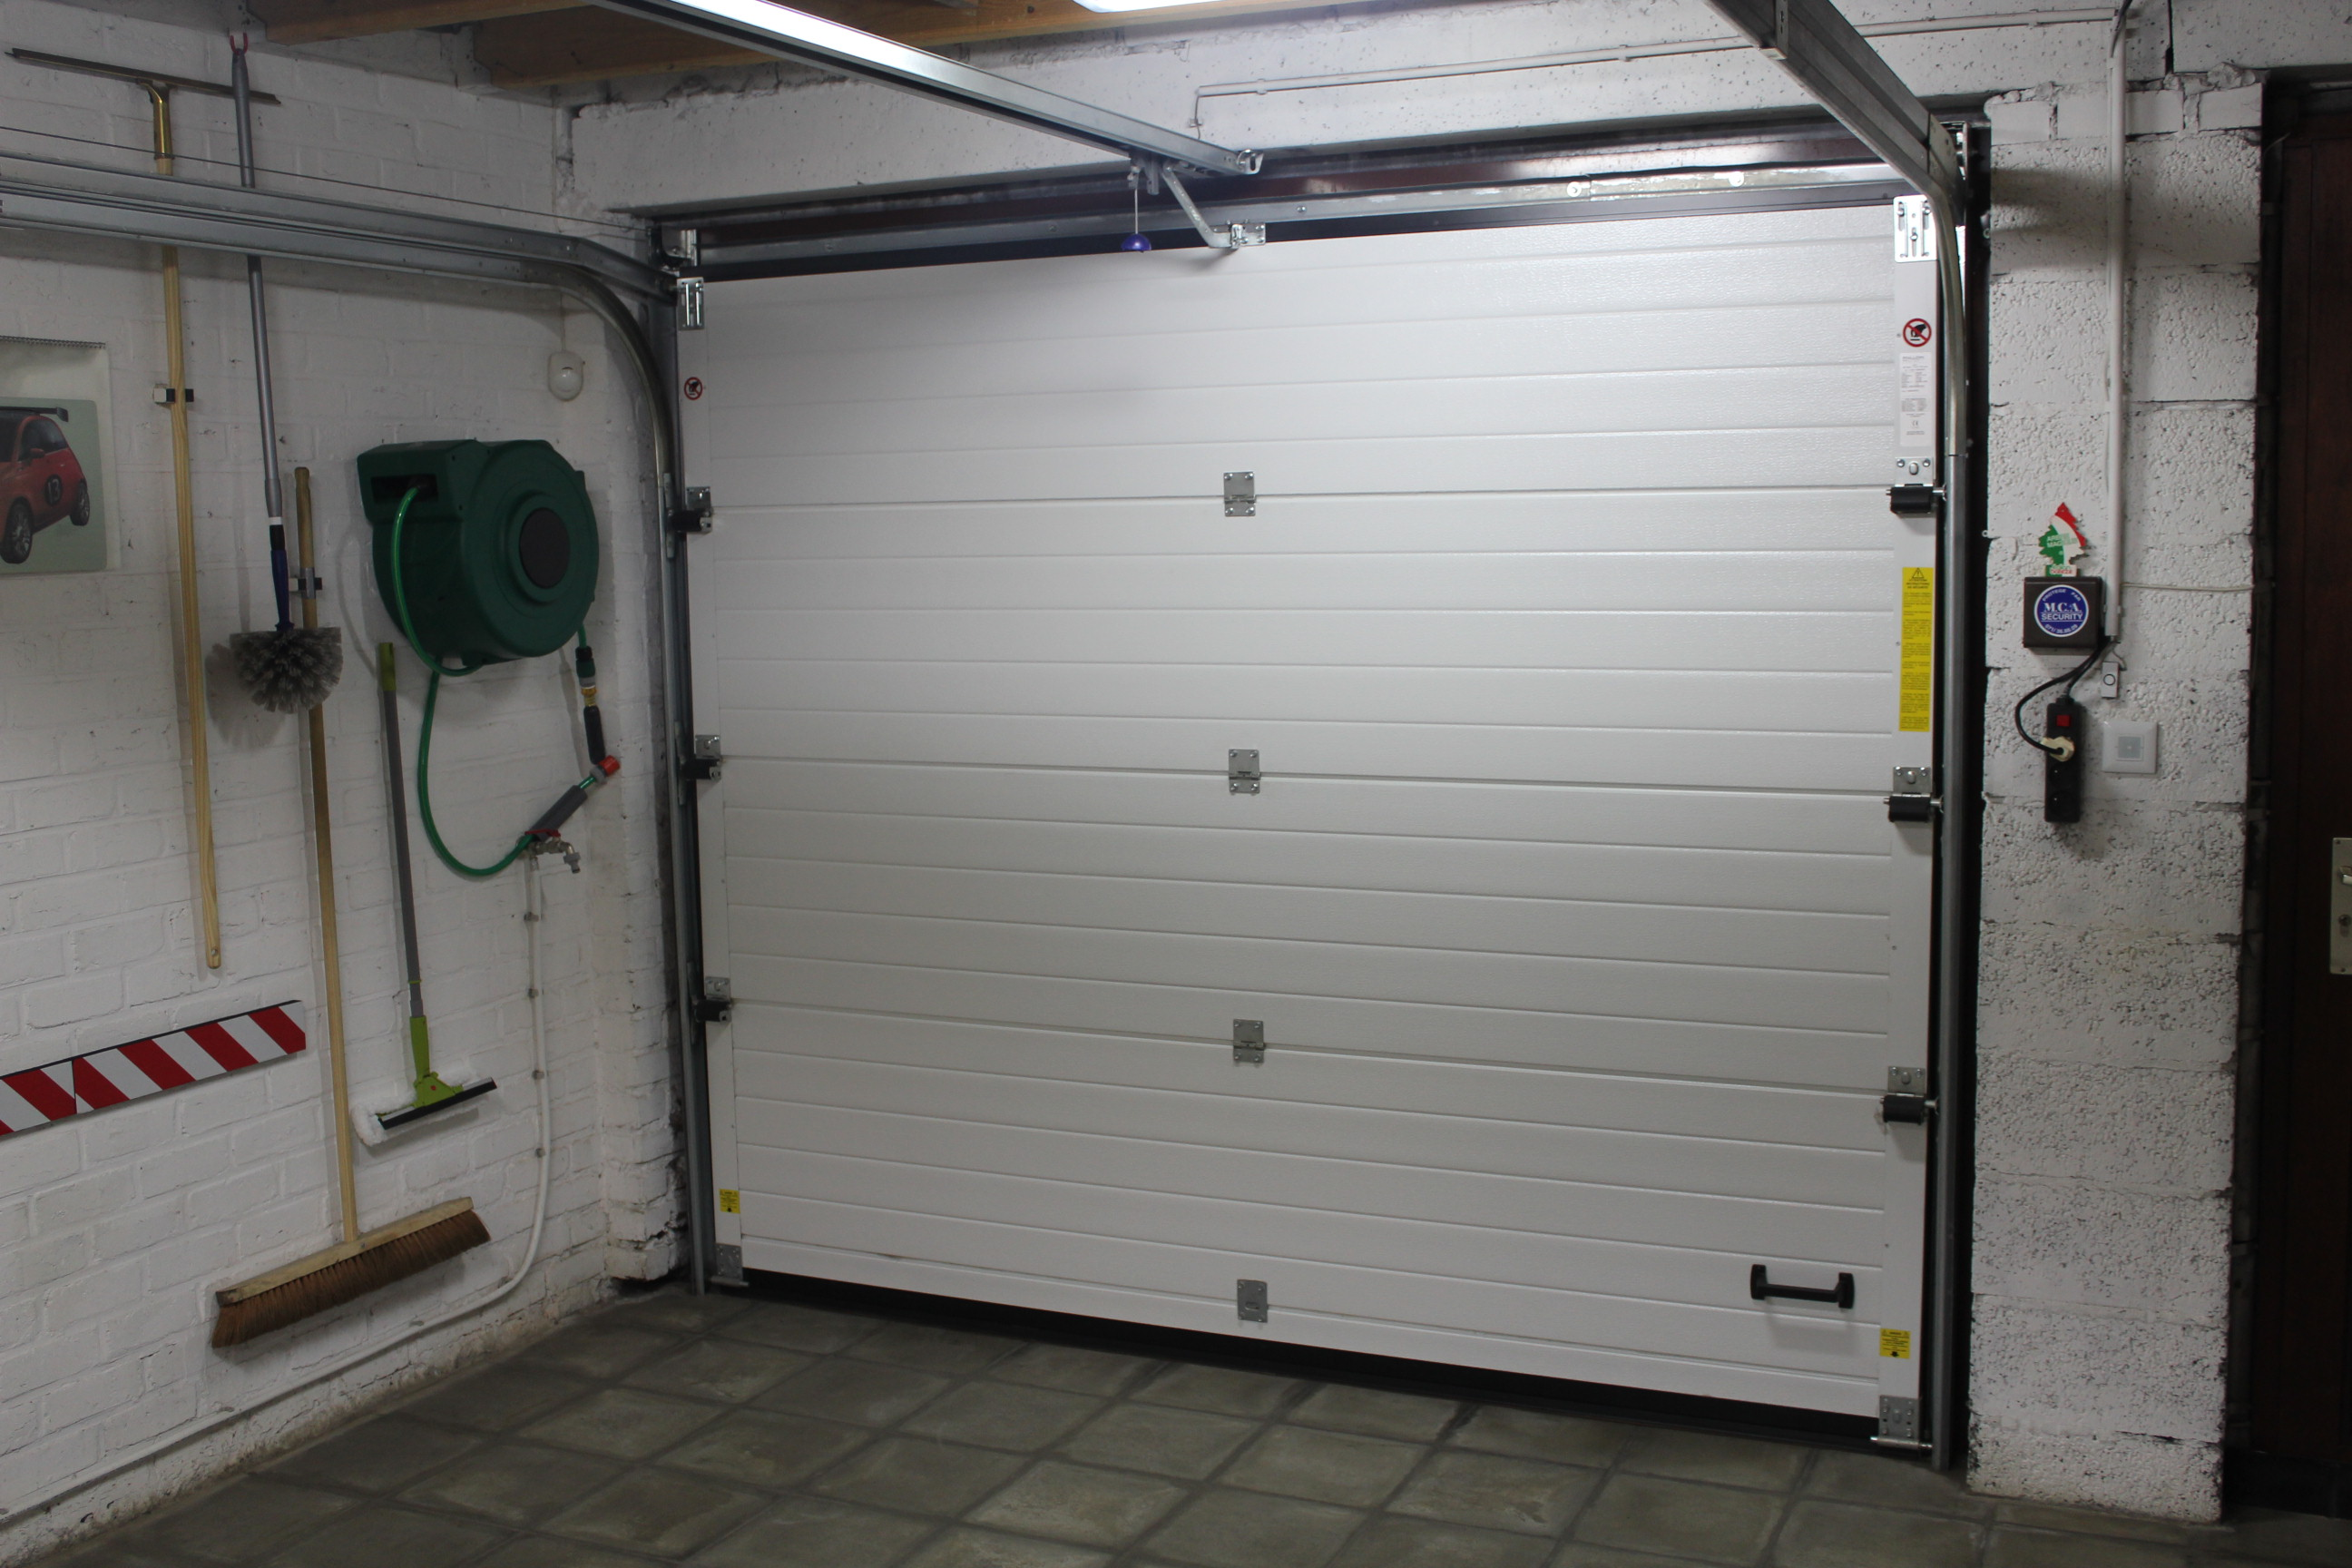 Placement de porte de garage sectionnelle et basculante charleroi mons namur mp menuiserie - Porte de garage sectionnelle ...